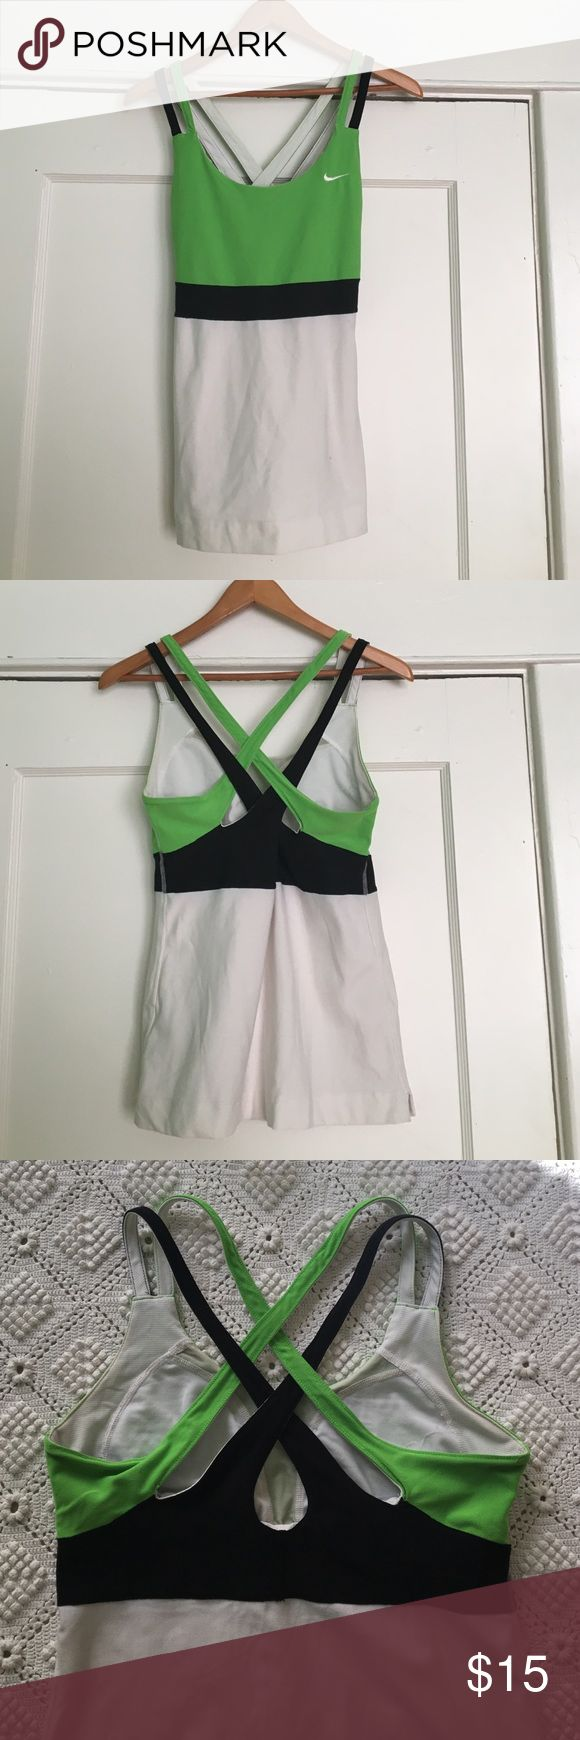 Nike top such an amazing workout top. built-in bra. beautiful crossed straps. dri-fit material. Nike Tops Tank Tops